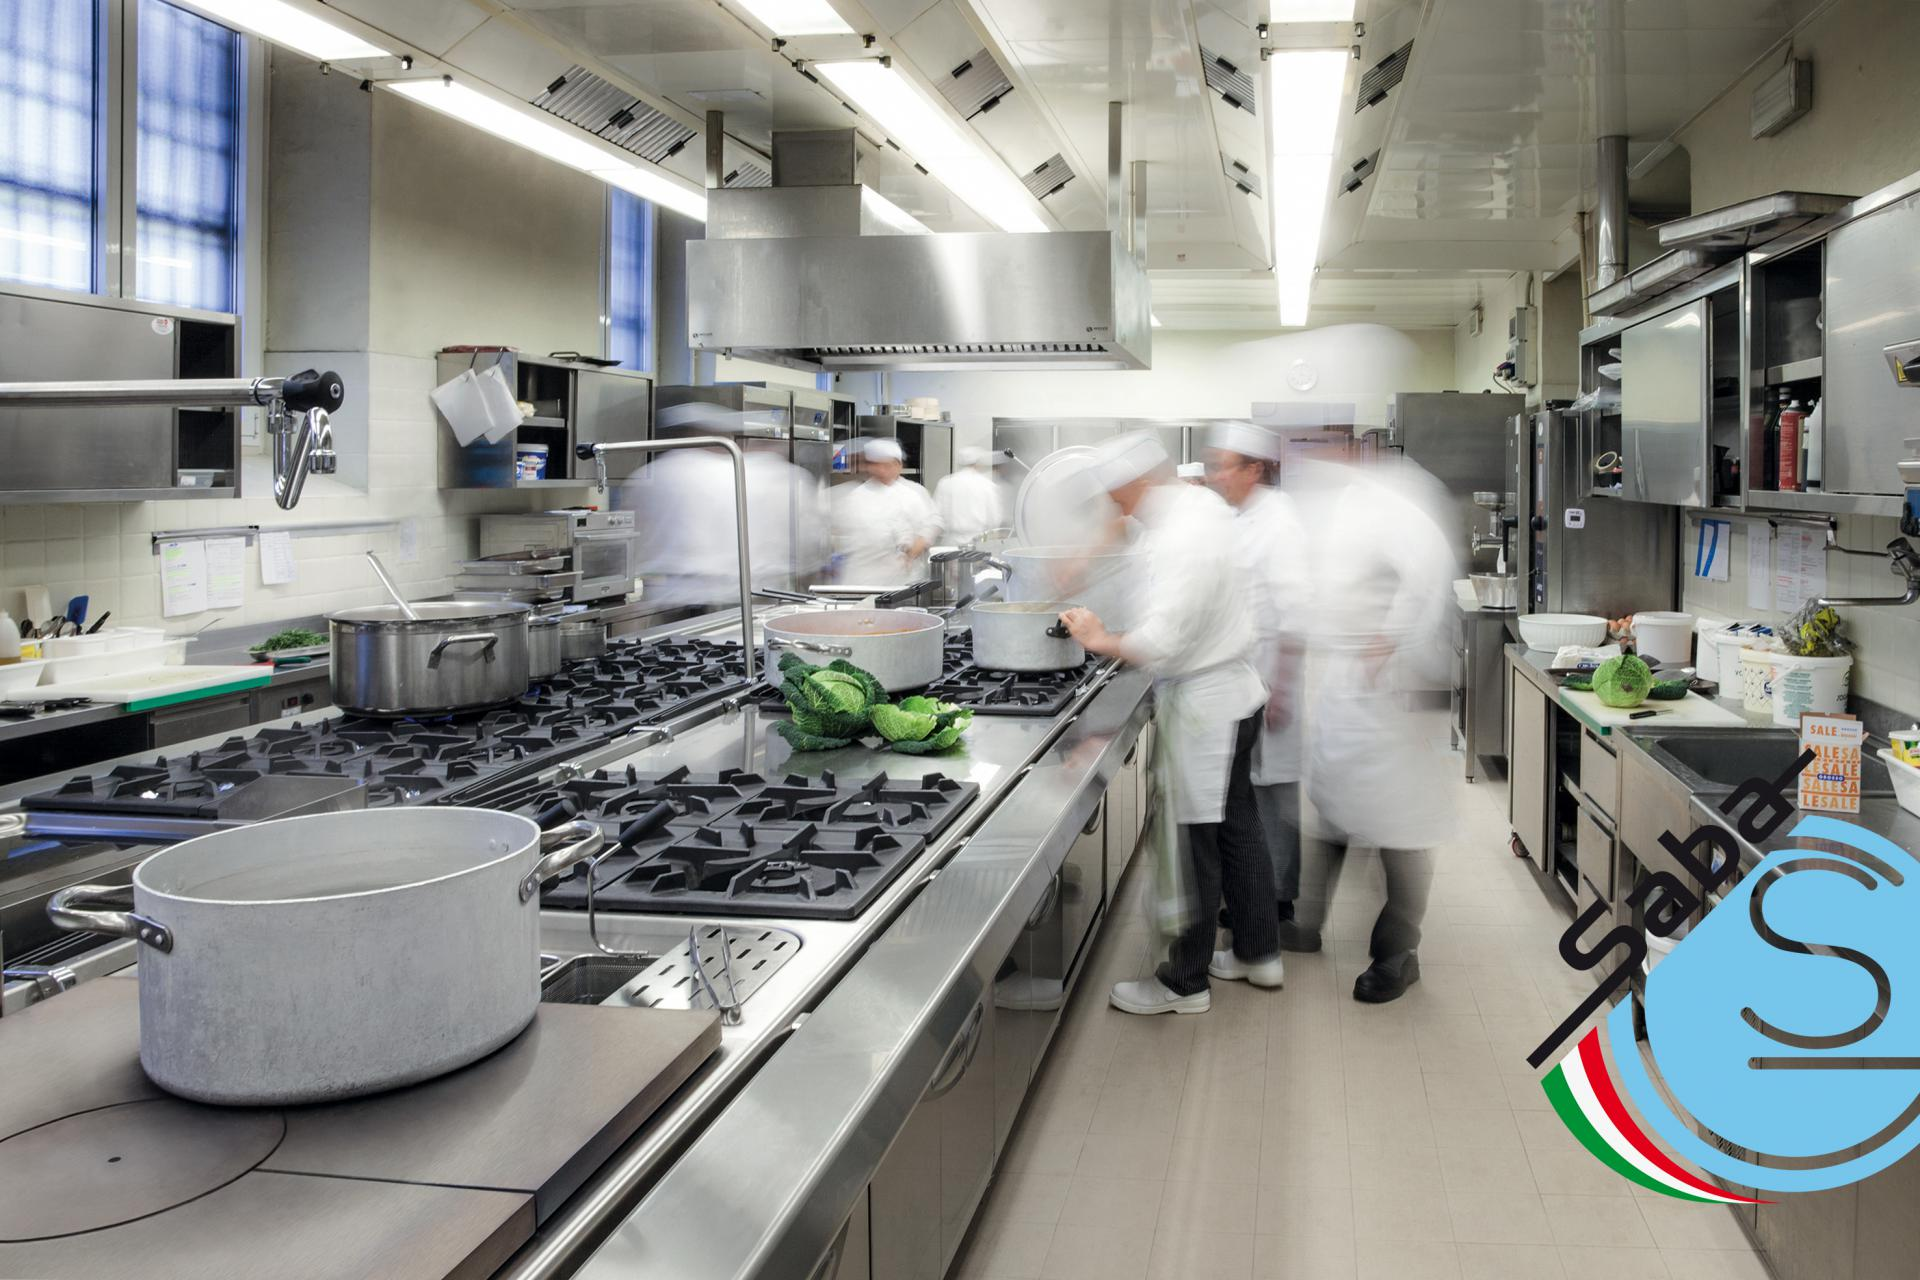 ATTREZZATURE PROFESSIONALI FOOD E NO FOOD DALLA A ALLA Z